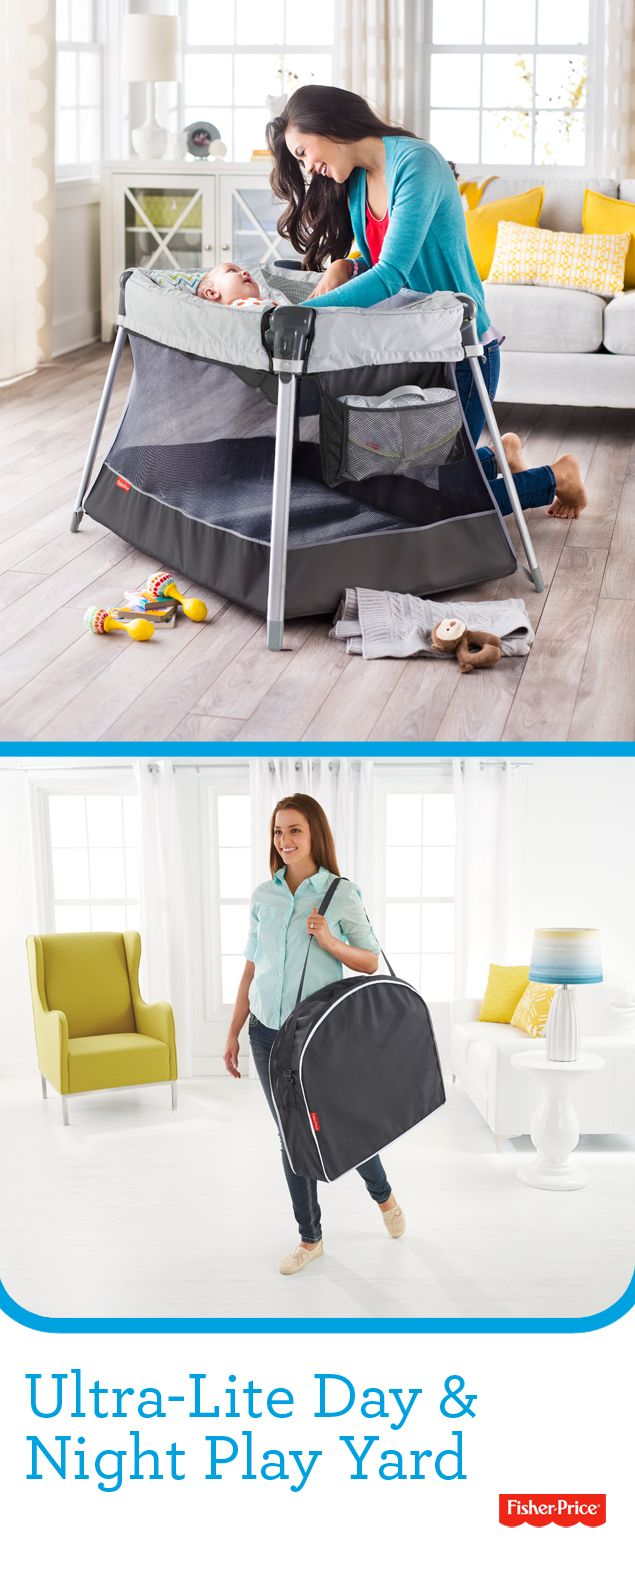 The Fisher-Price Ultra-Lite Day & Night Play Yard is half the weight of other play yards for easy on-the-go portability. An inclined sleeper and large play space means baby can nap and play all day.